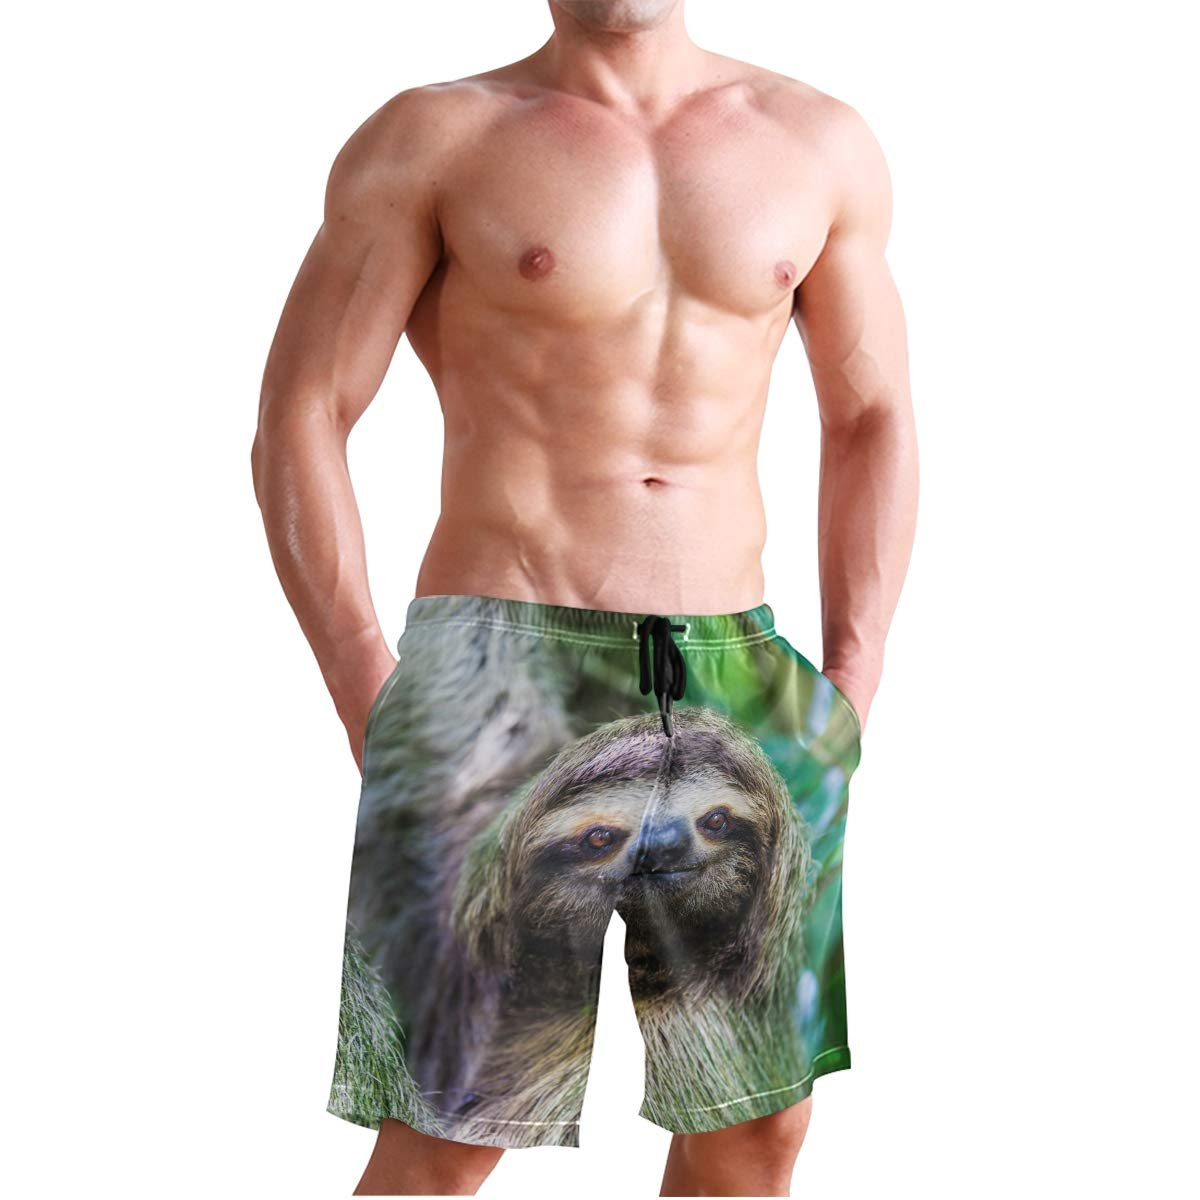 JECERY Mens Swim Trunks Cute Animal Sloth Quick Dry Board Shorts with Drawstring and Pockets